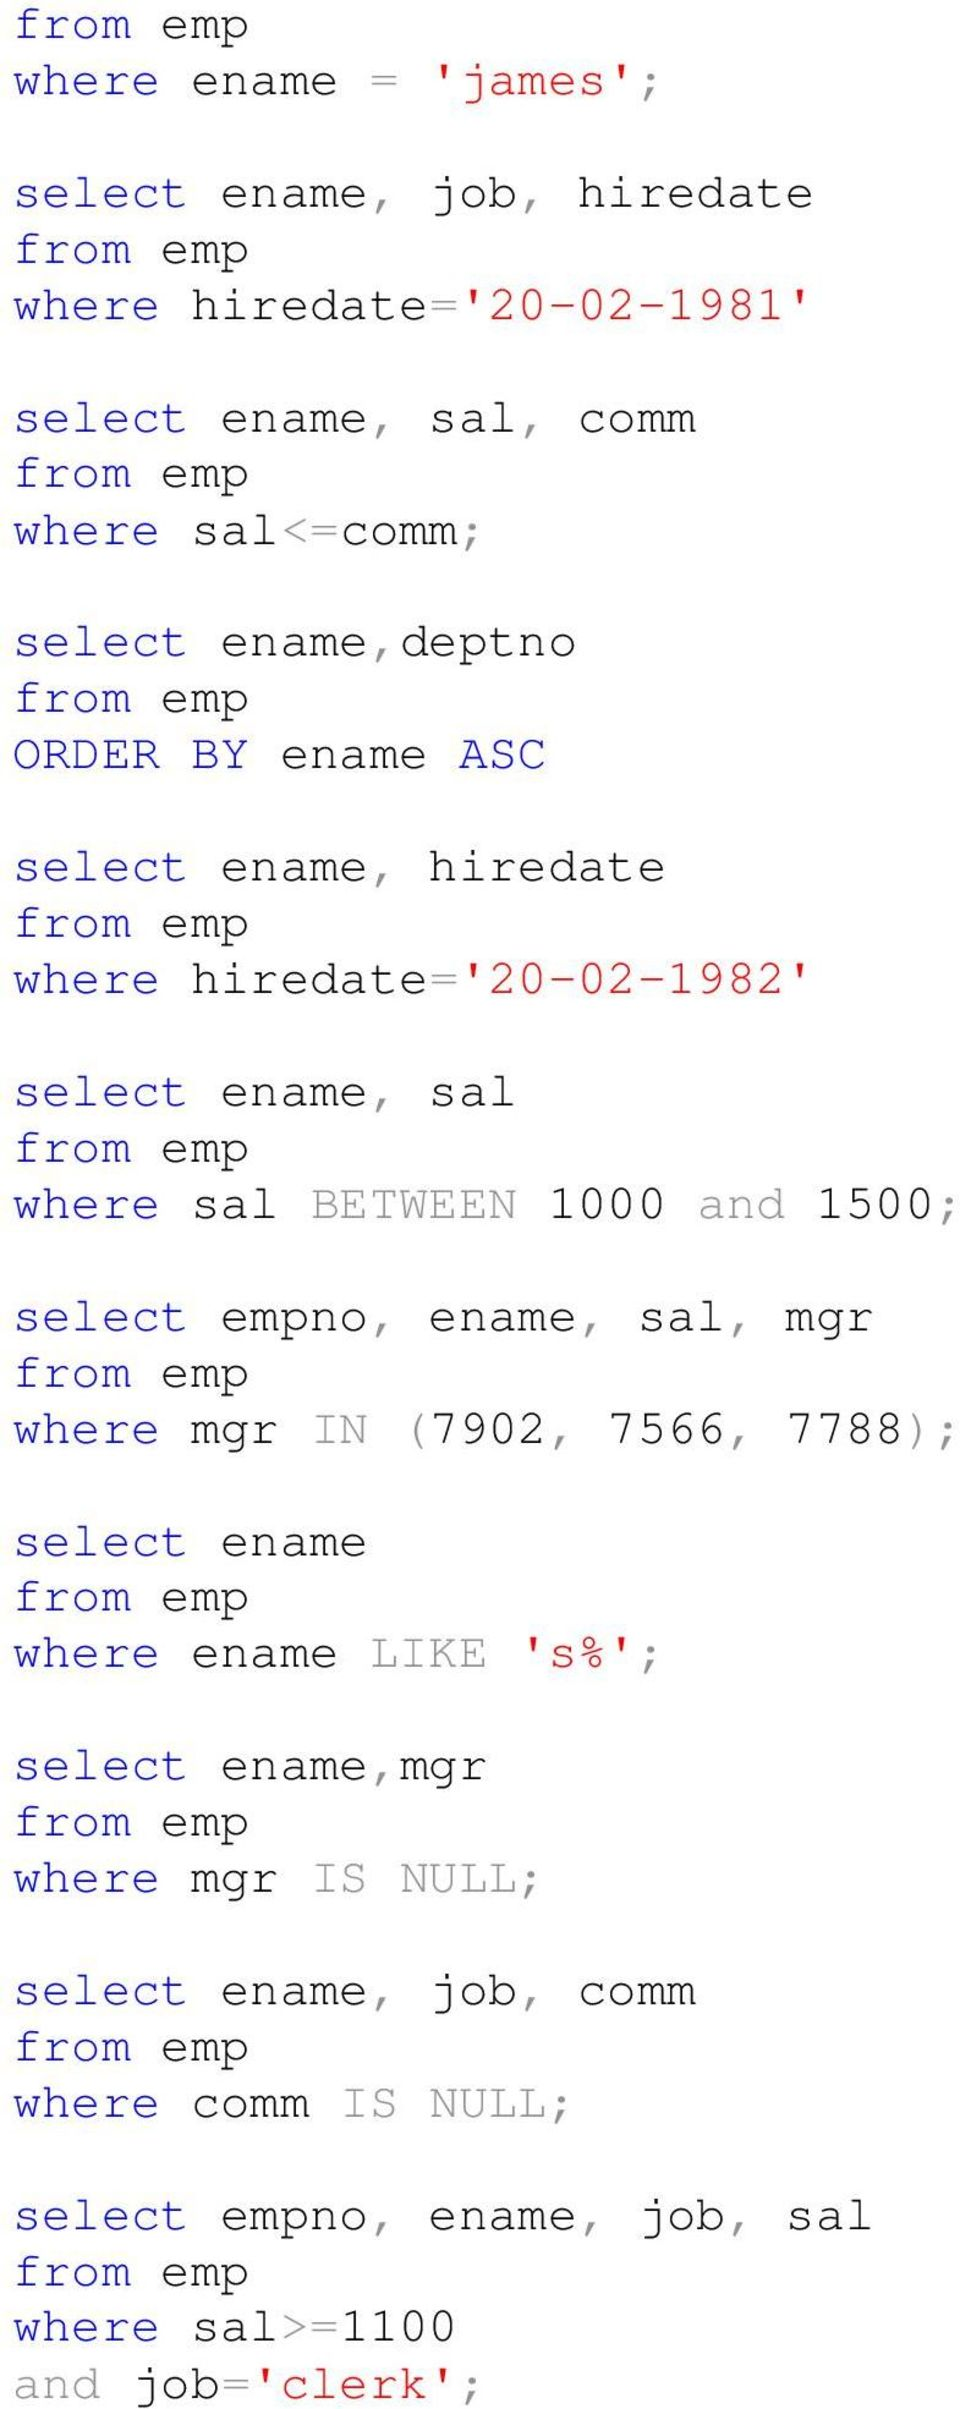 1000 and 1500; select empno, ename, sal, mgr where mgr IN (7902, 7566, 7788); select ename where ename LIKE 's%'; select